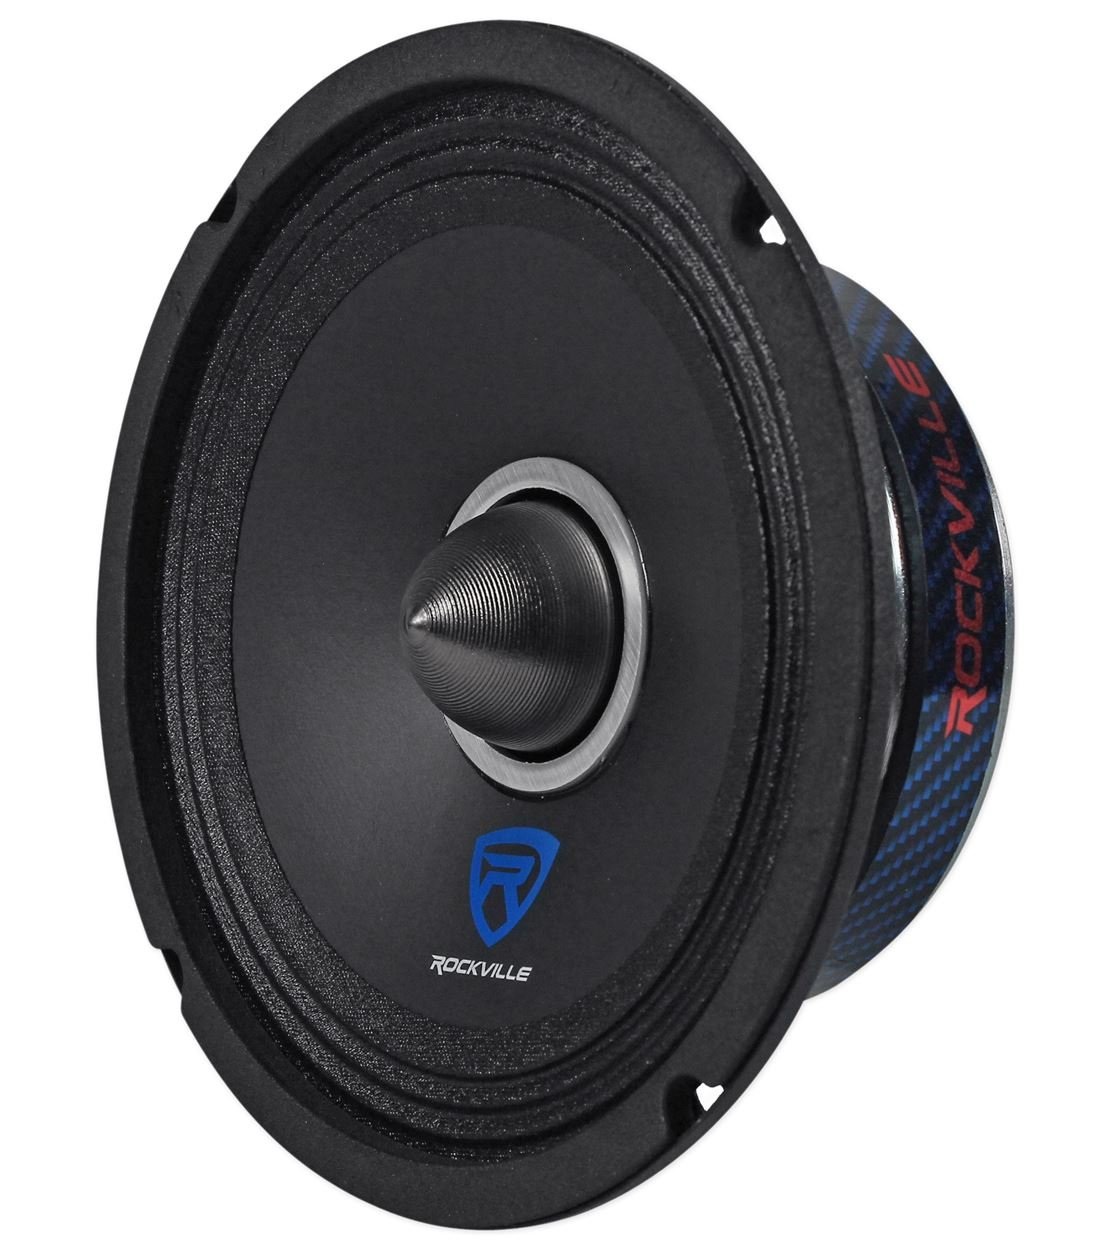 (2) Rockville RXM68 6.5'' 300w 8 Ohm Mid-Range Drivers Car Speakers, Mid-Bass by Rockville (Image #3)